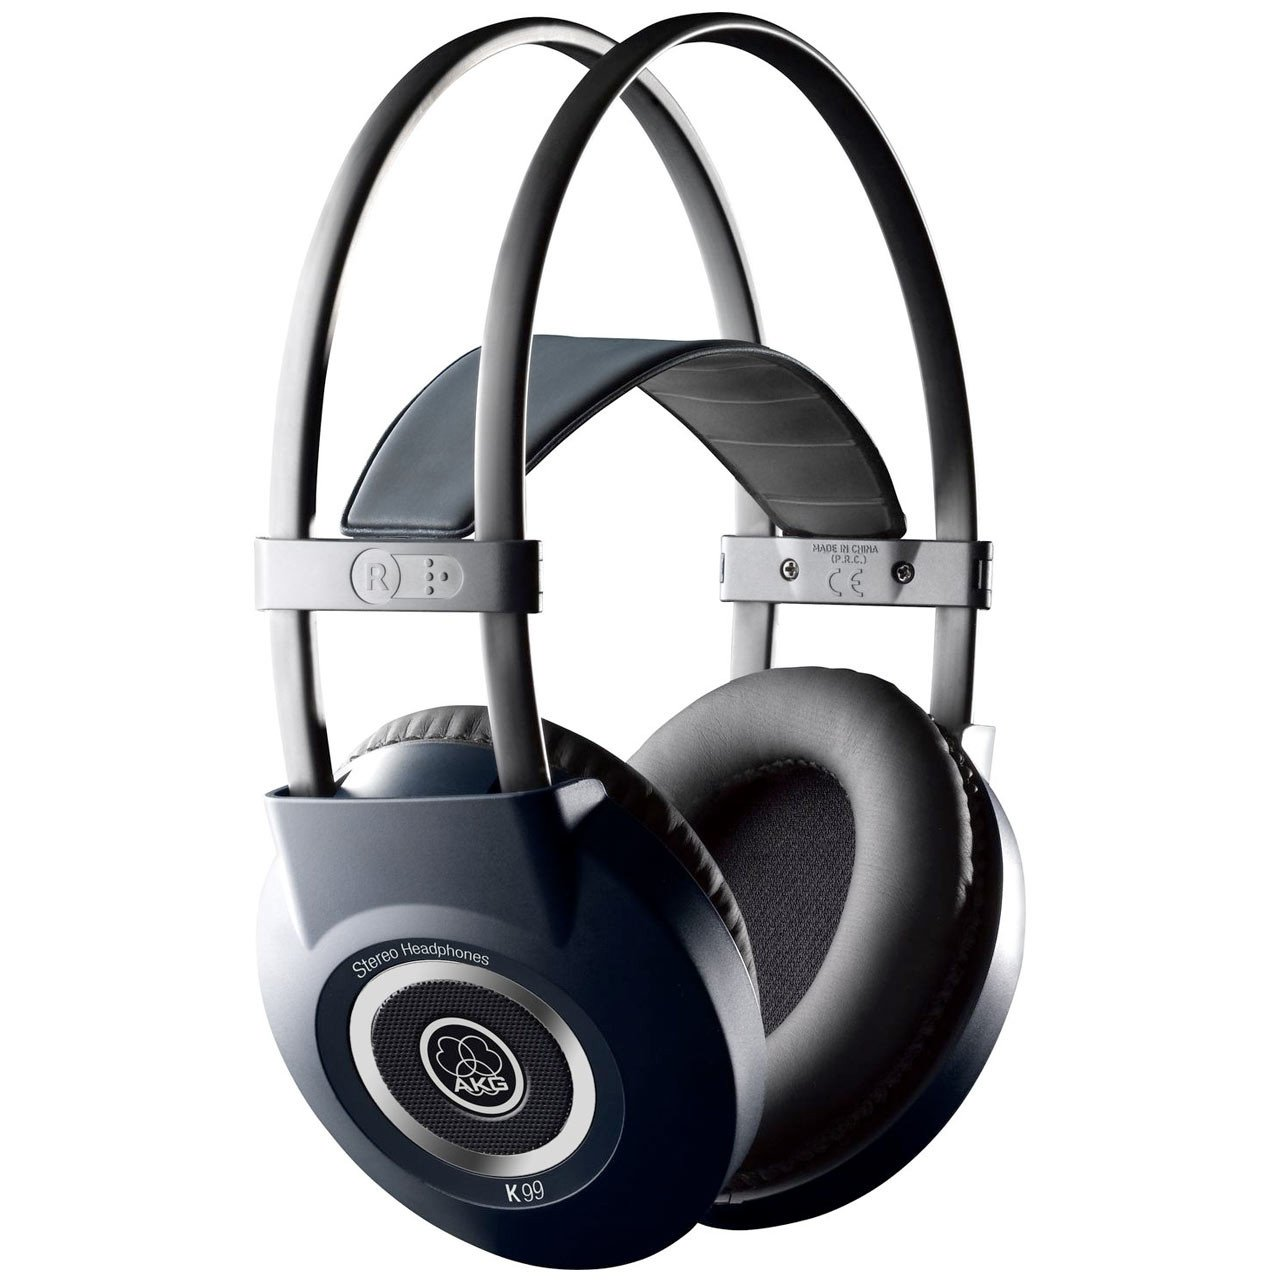 AKG K99 Perception High Performance Headphones